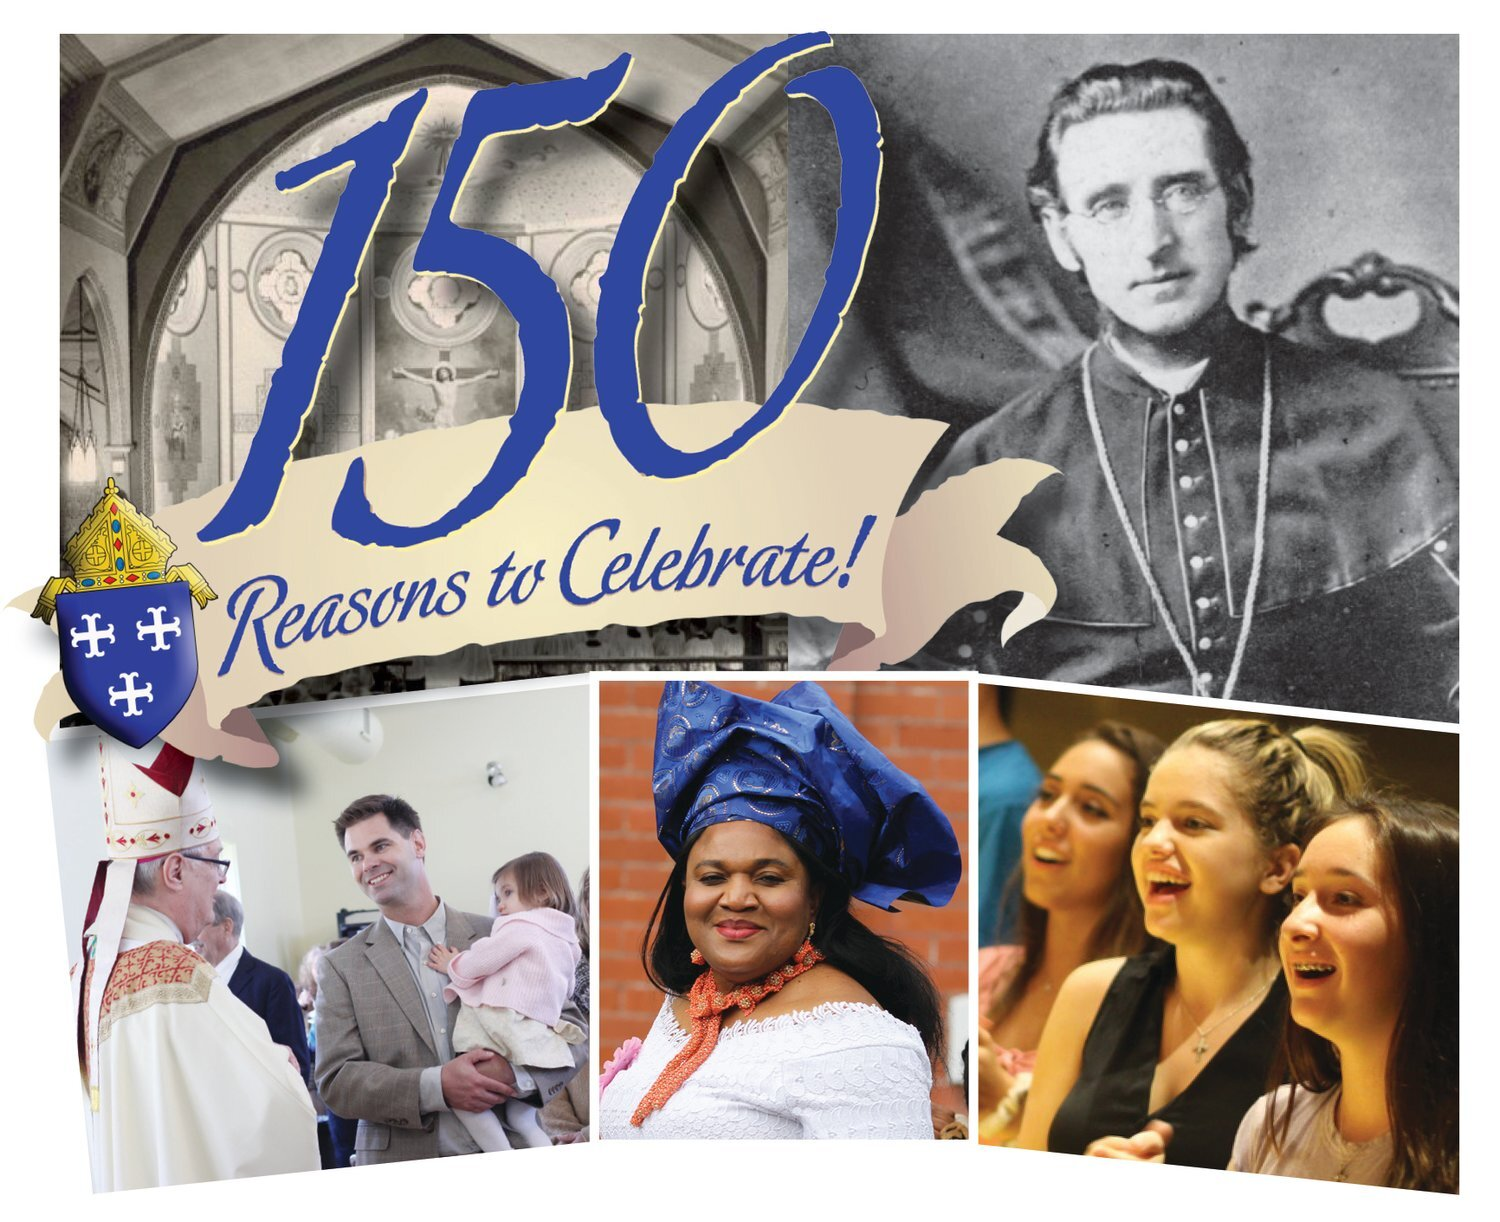 Diocese plans for 150th anniversary